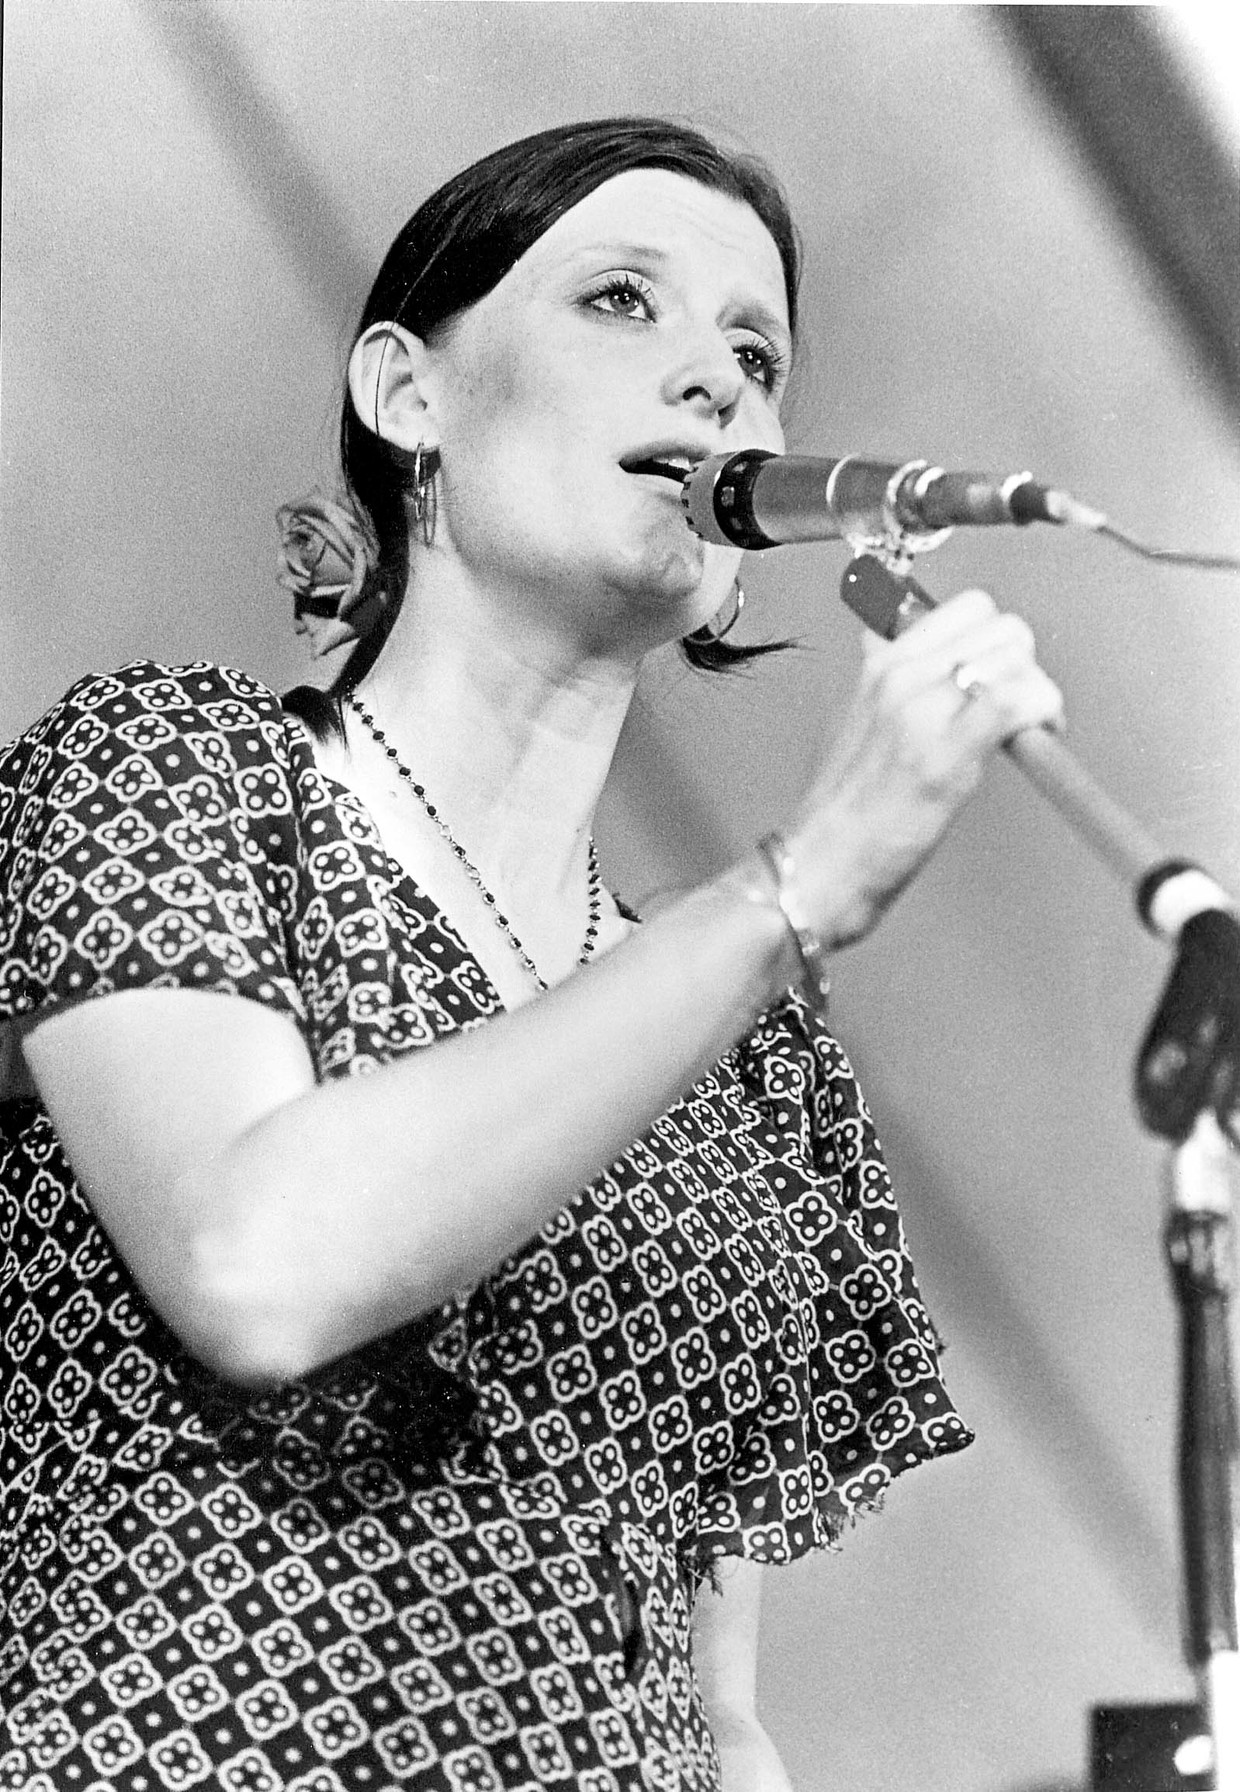 UNSPECIFIED - CIRCA 2000:  Photo of Linda THOMPSON  (Photo by Gems/Redferns) Beeld Redferns